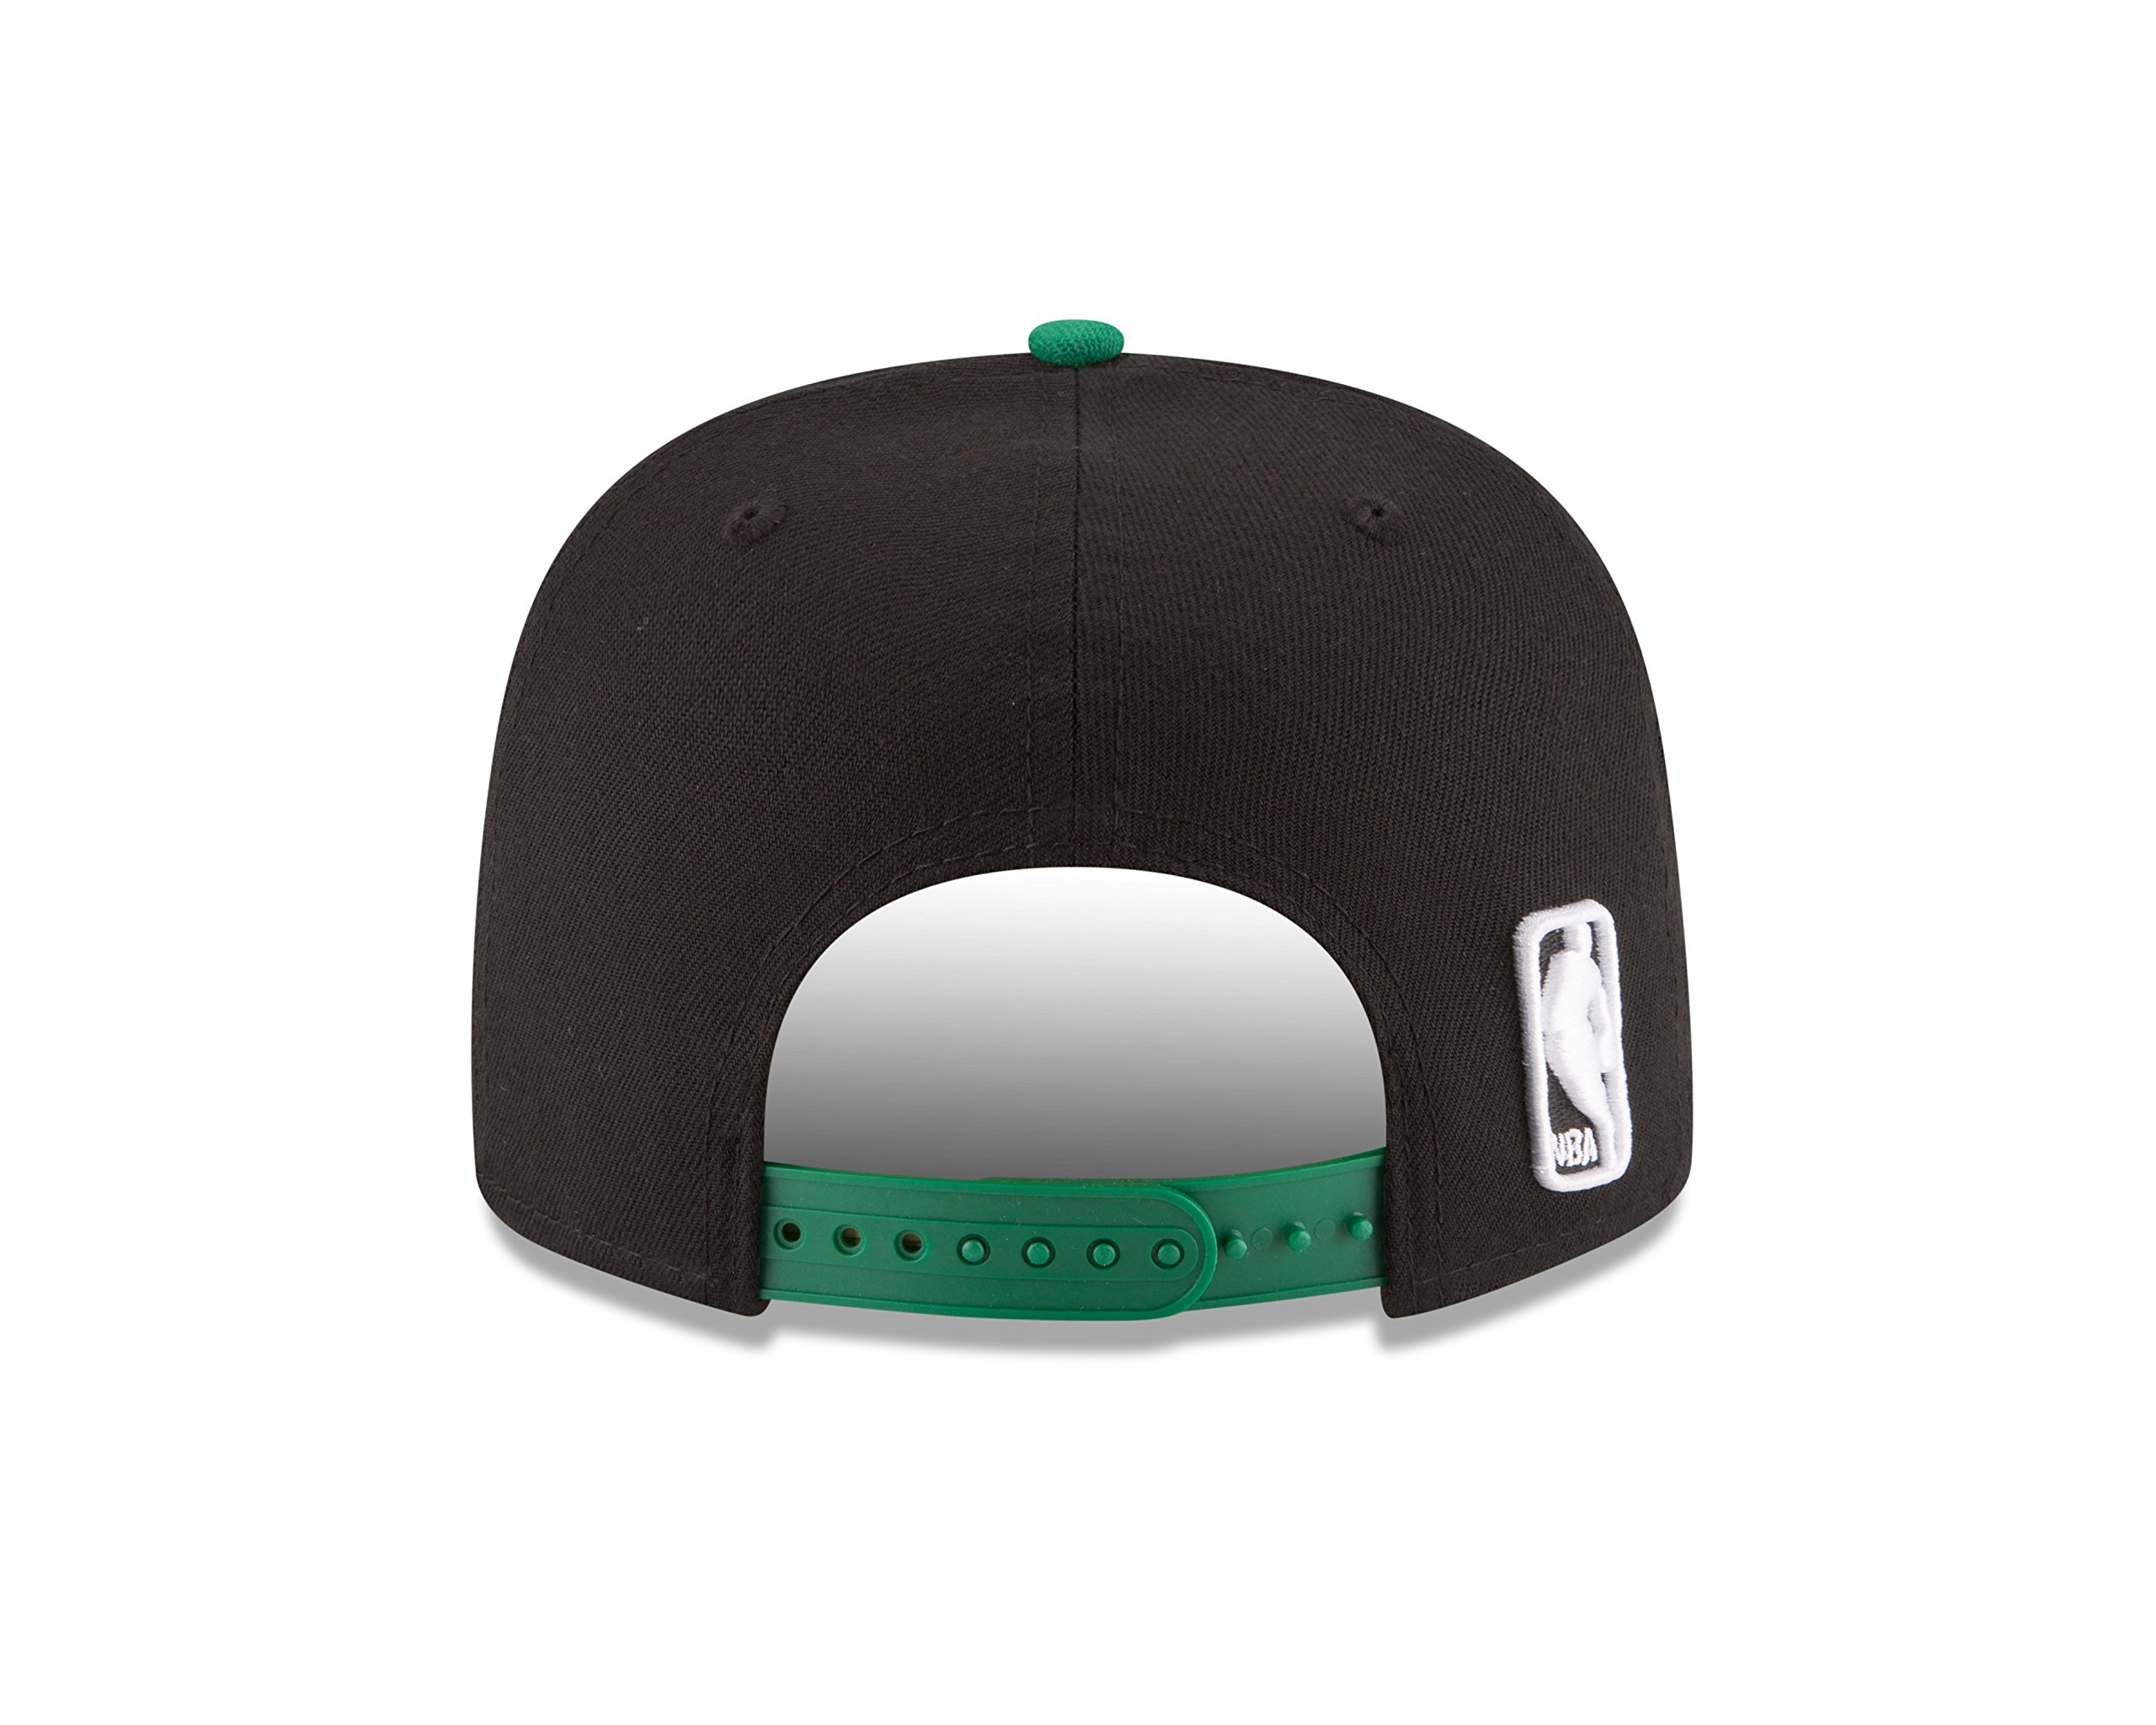 pretty nice 8e120 d6e3f New Era NBA Boston Celtics Men s 9Fifty Original Fit 2Tone Snapback Cap,  One Size, Black   Categories   Sports   Outdoors - tibs